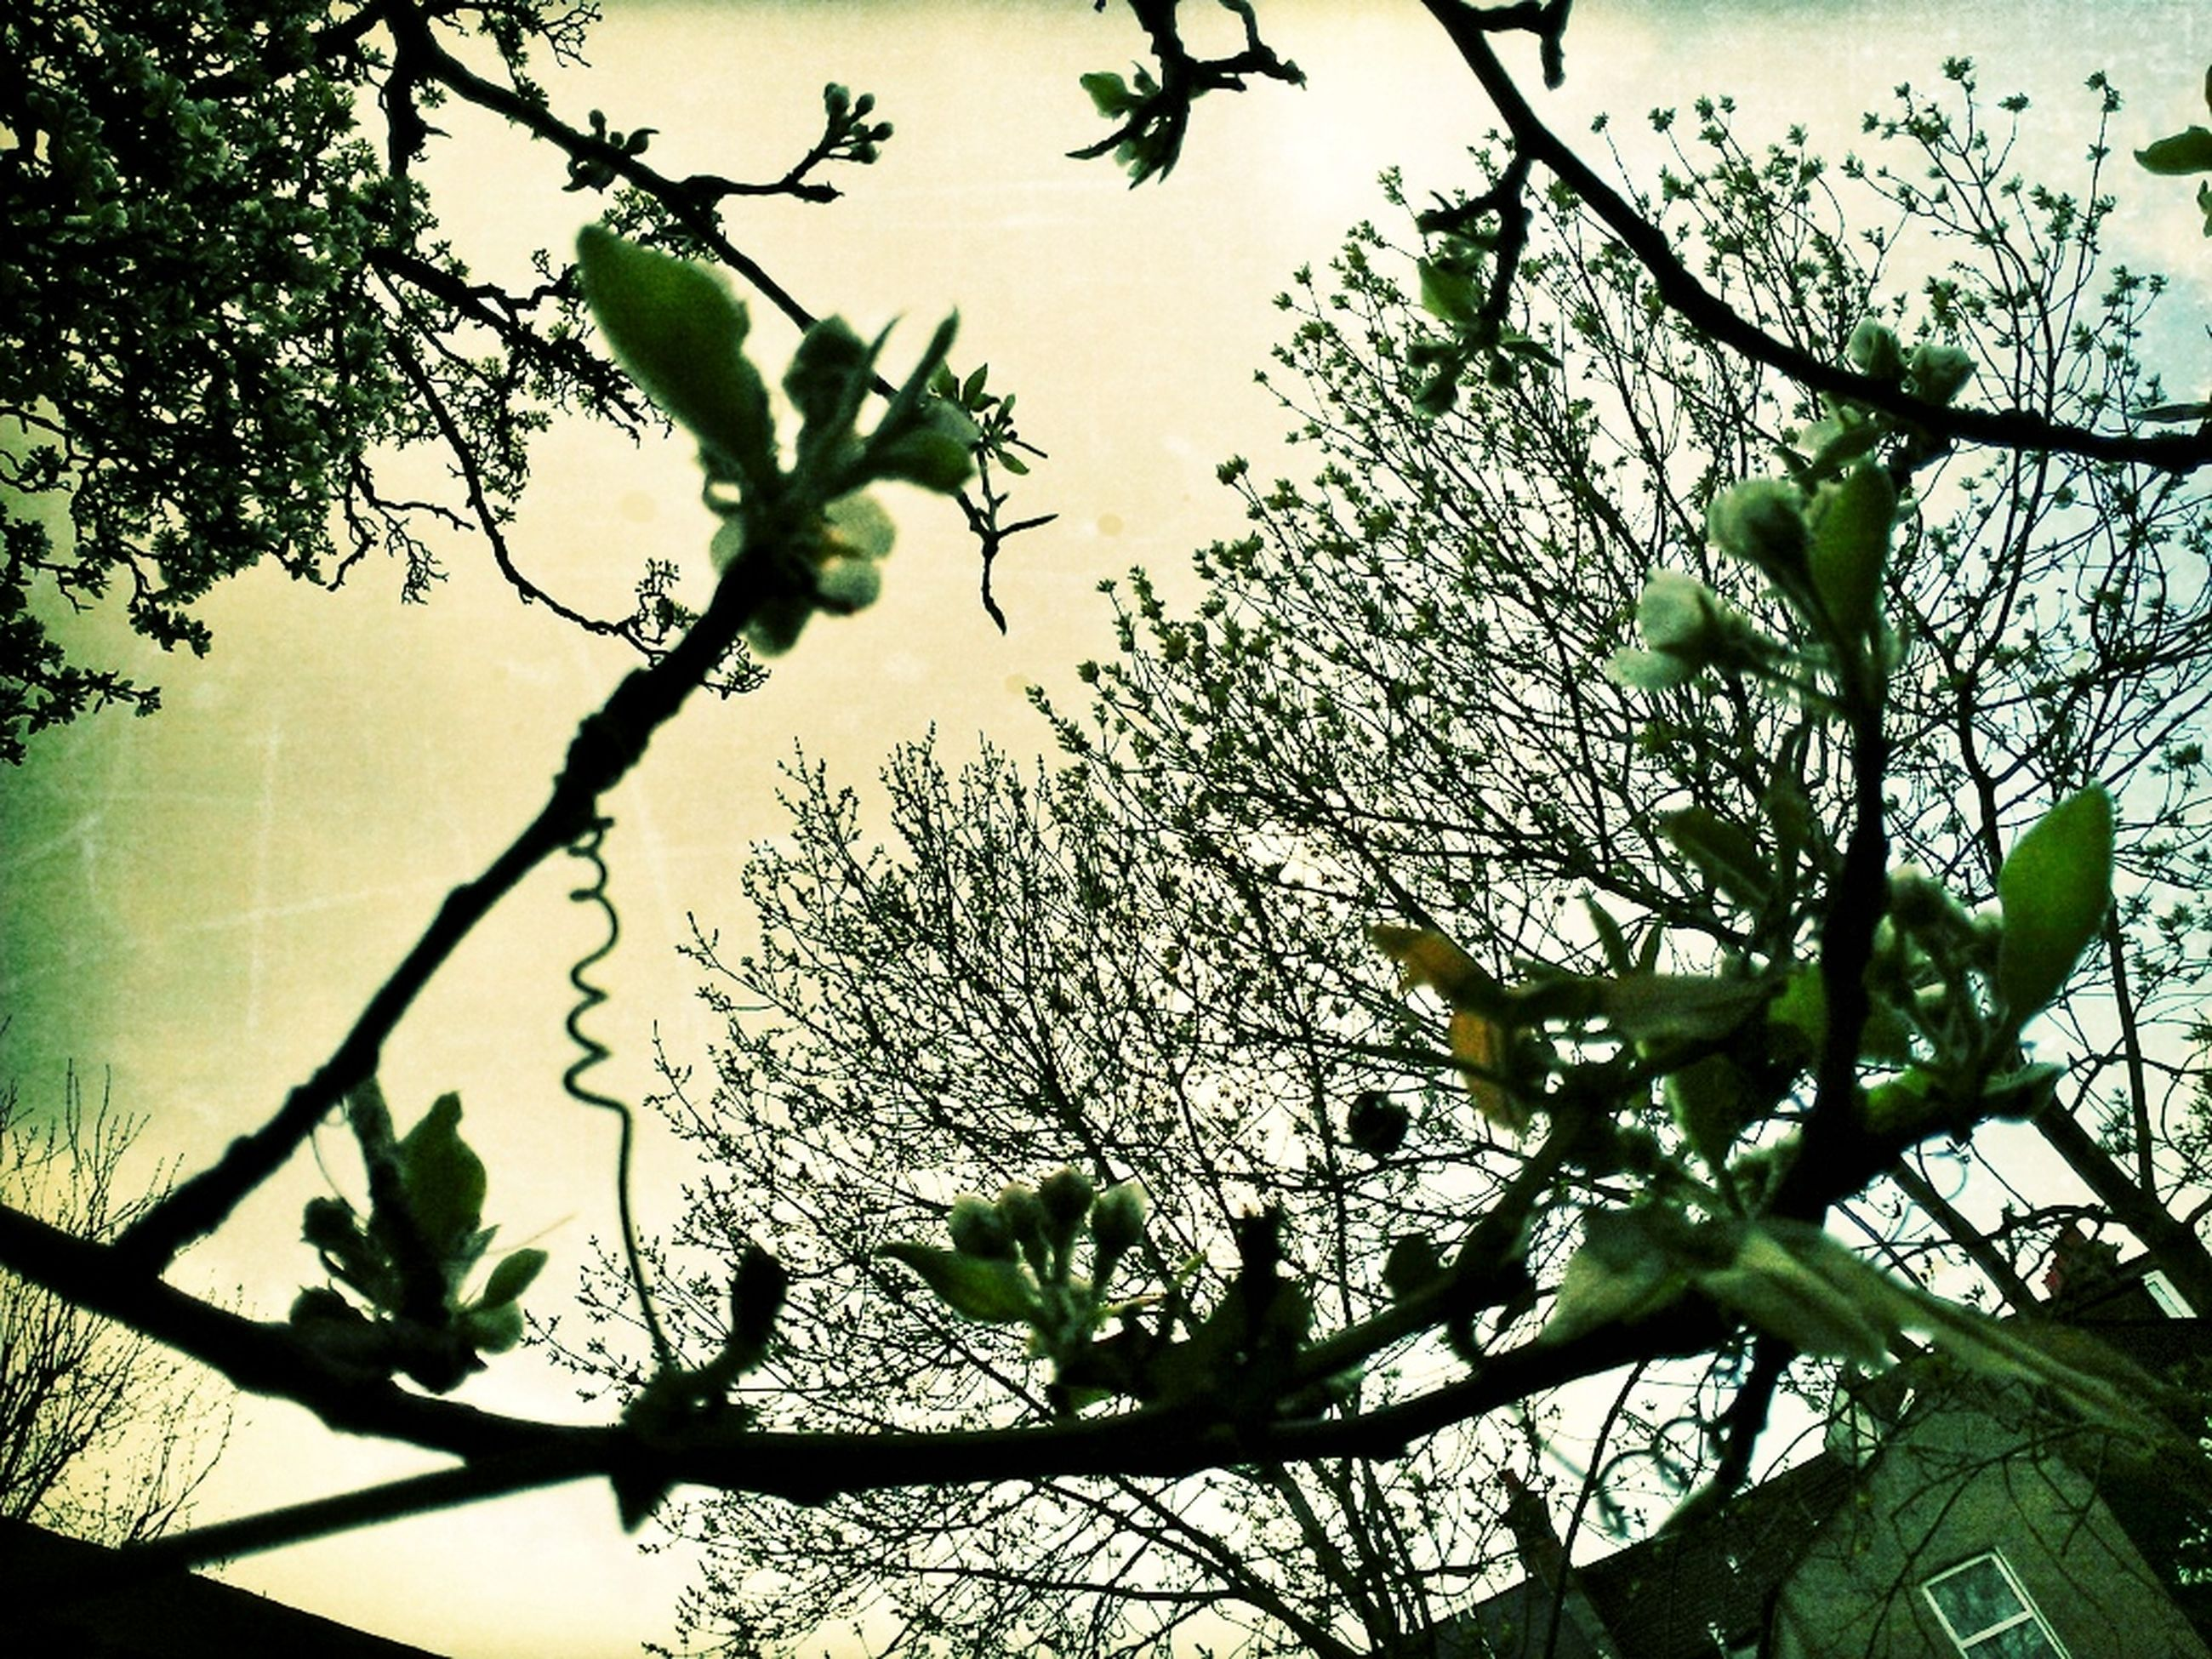 branch, low angle view, tree, bird, growth, leaf, nature, sky, animal themes, animals in the wild, twig, wildlife, flower, perching, plant, beauty in nature, silhouette, outdoors, clear sky, day